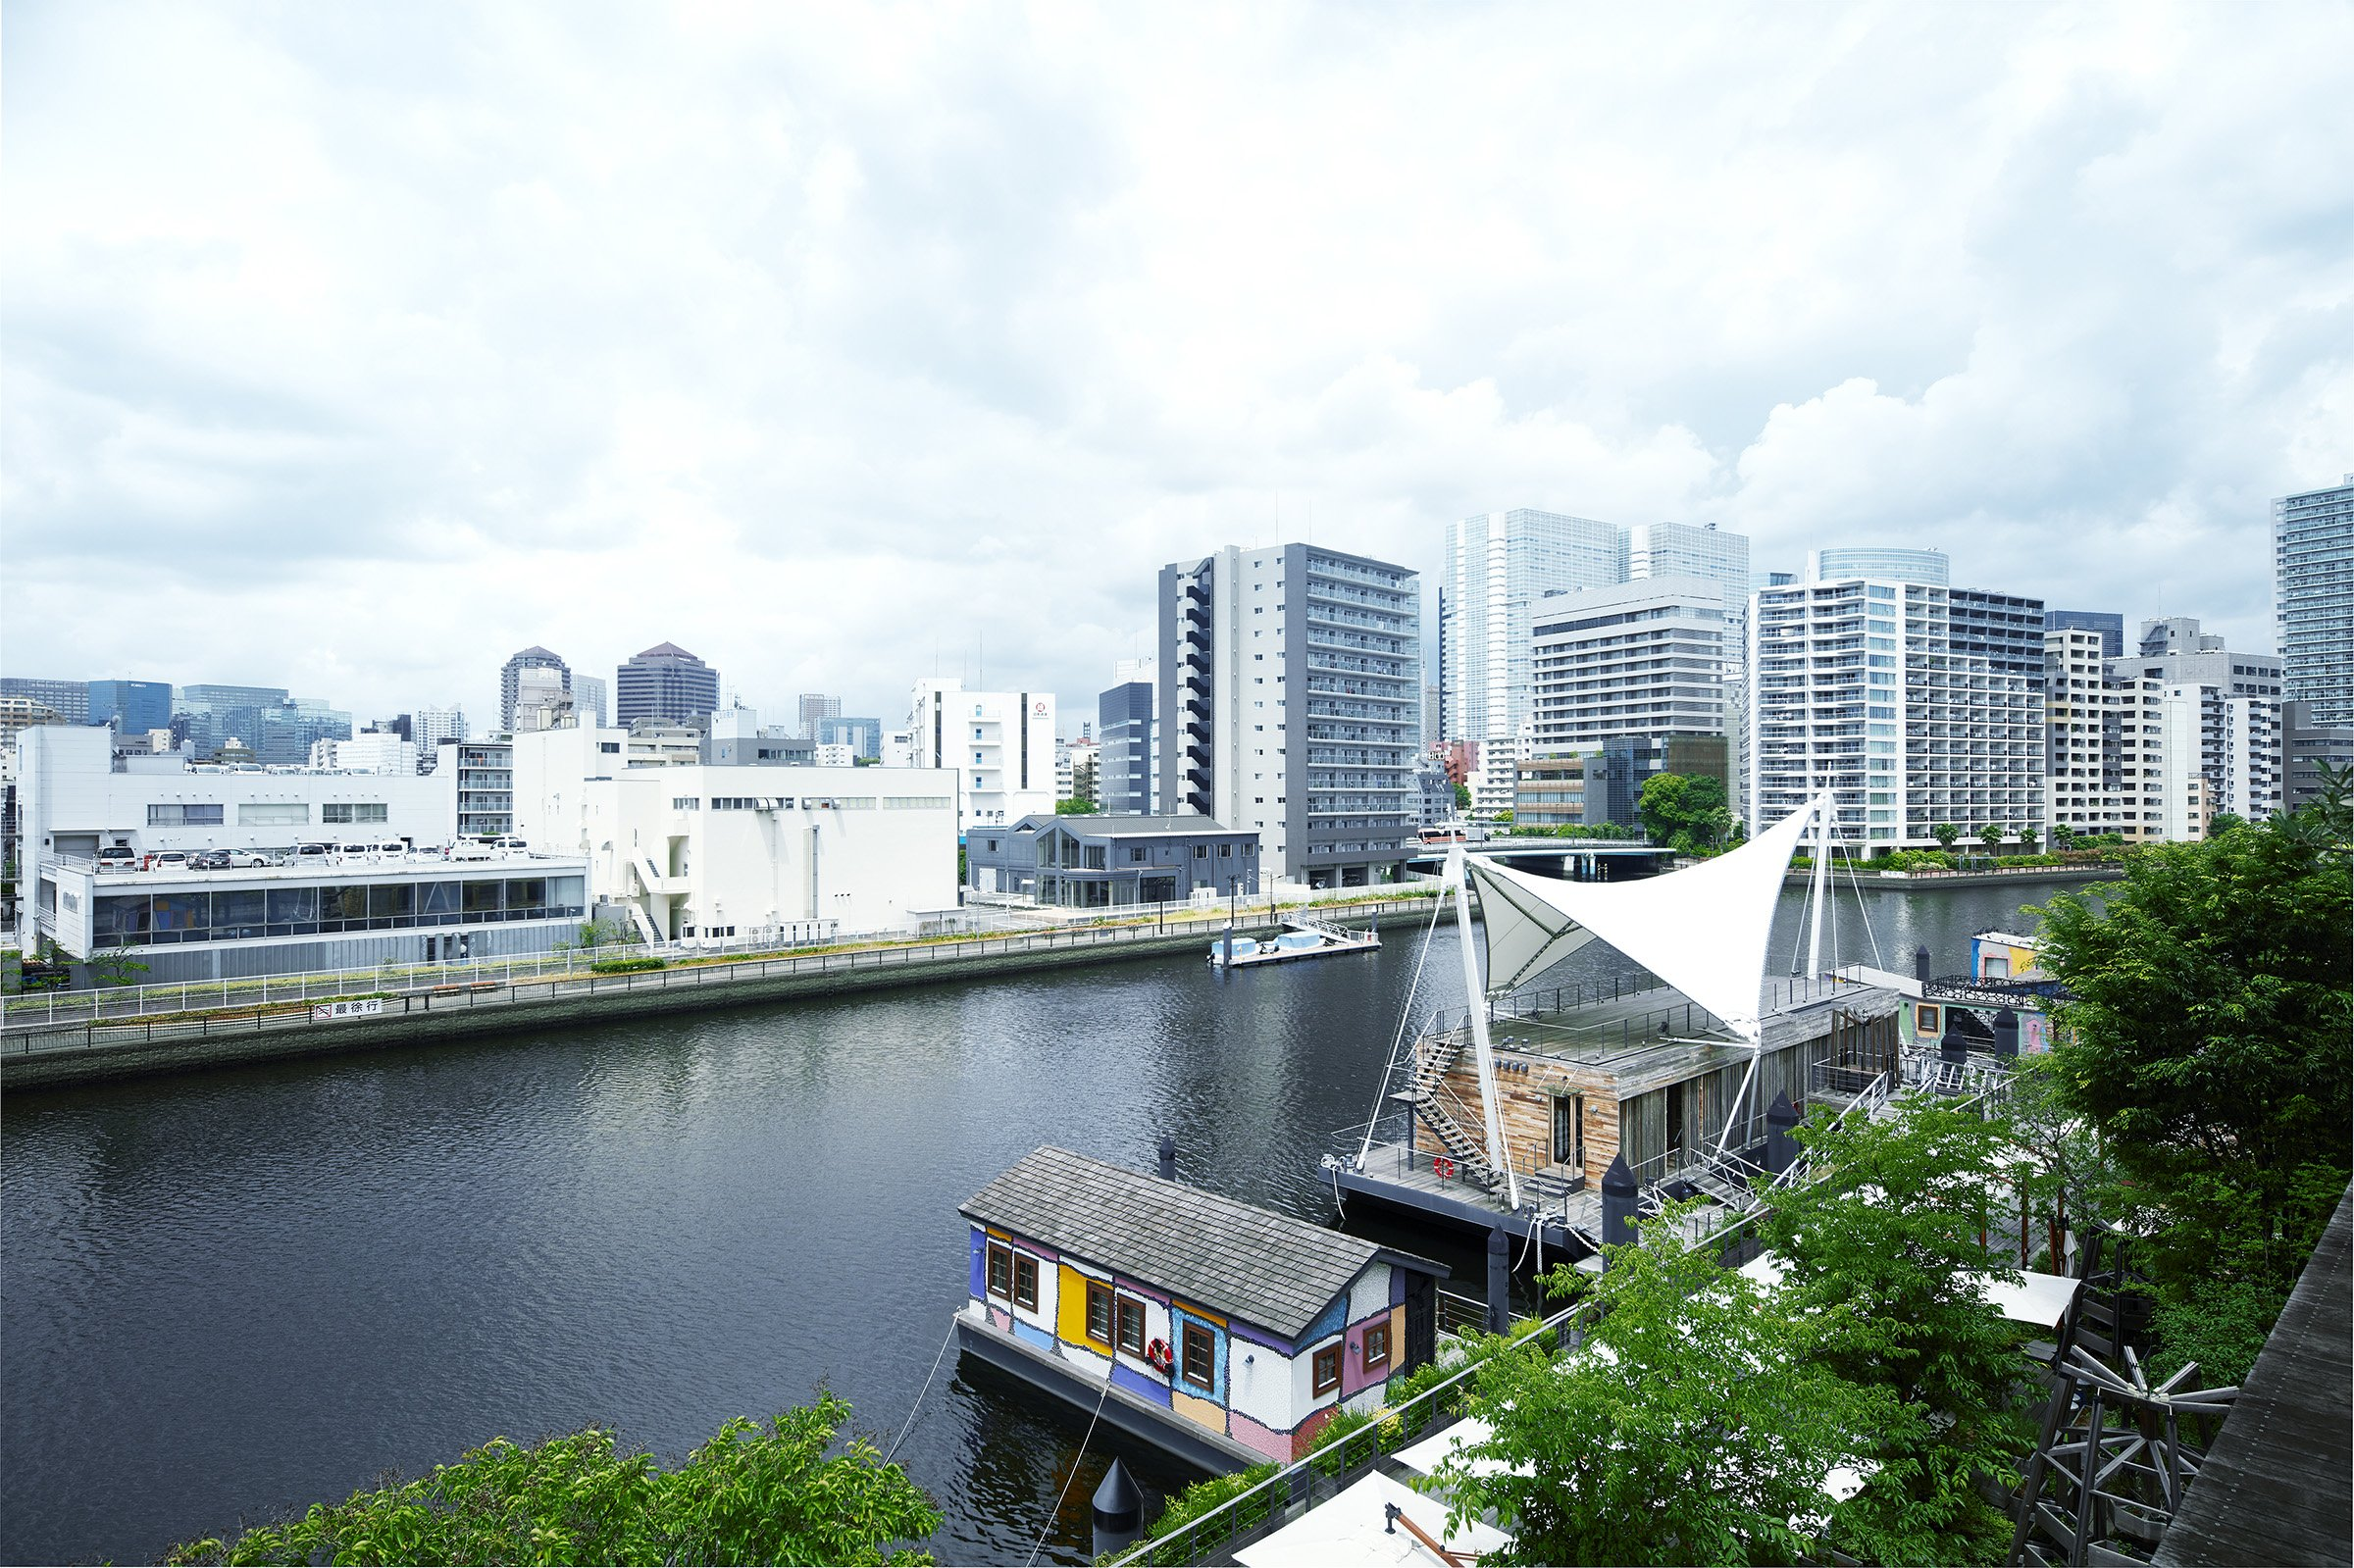 Photo: Tennozu area, a well-known waterfront facing the canal.